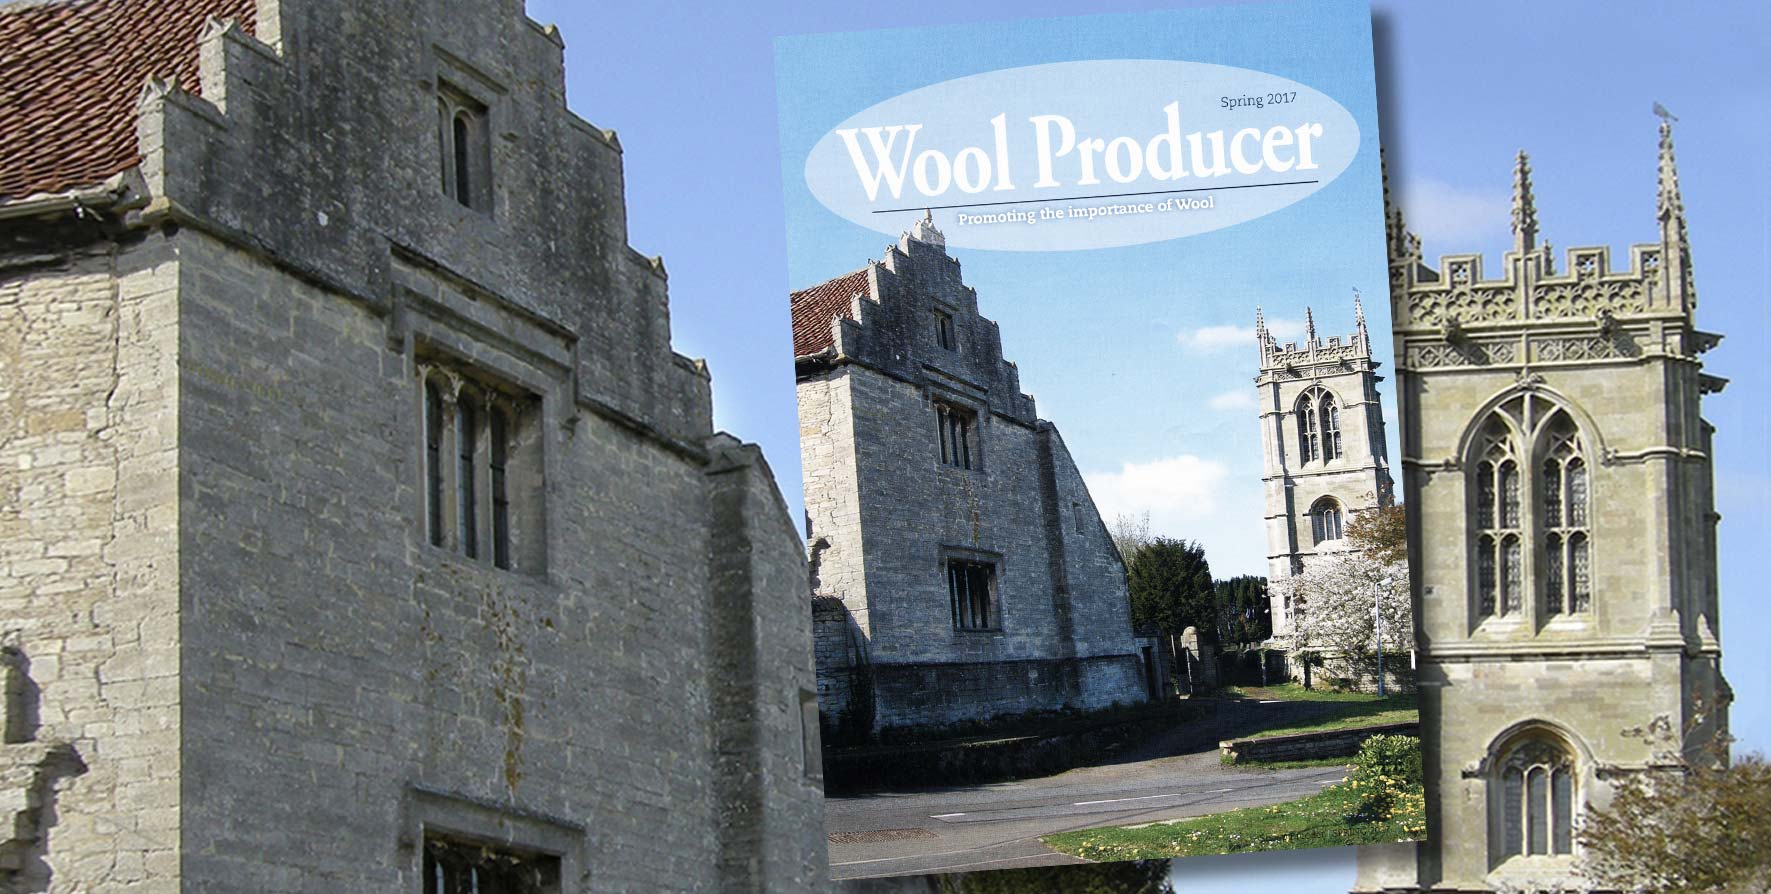 Traitors Gate - The Wool Producer